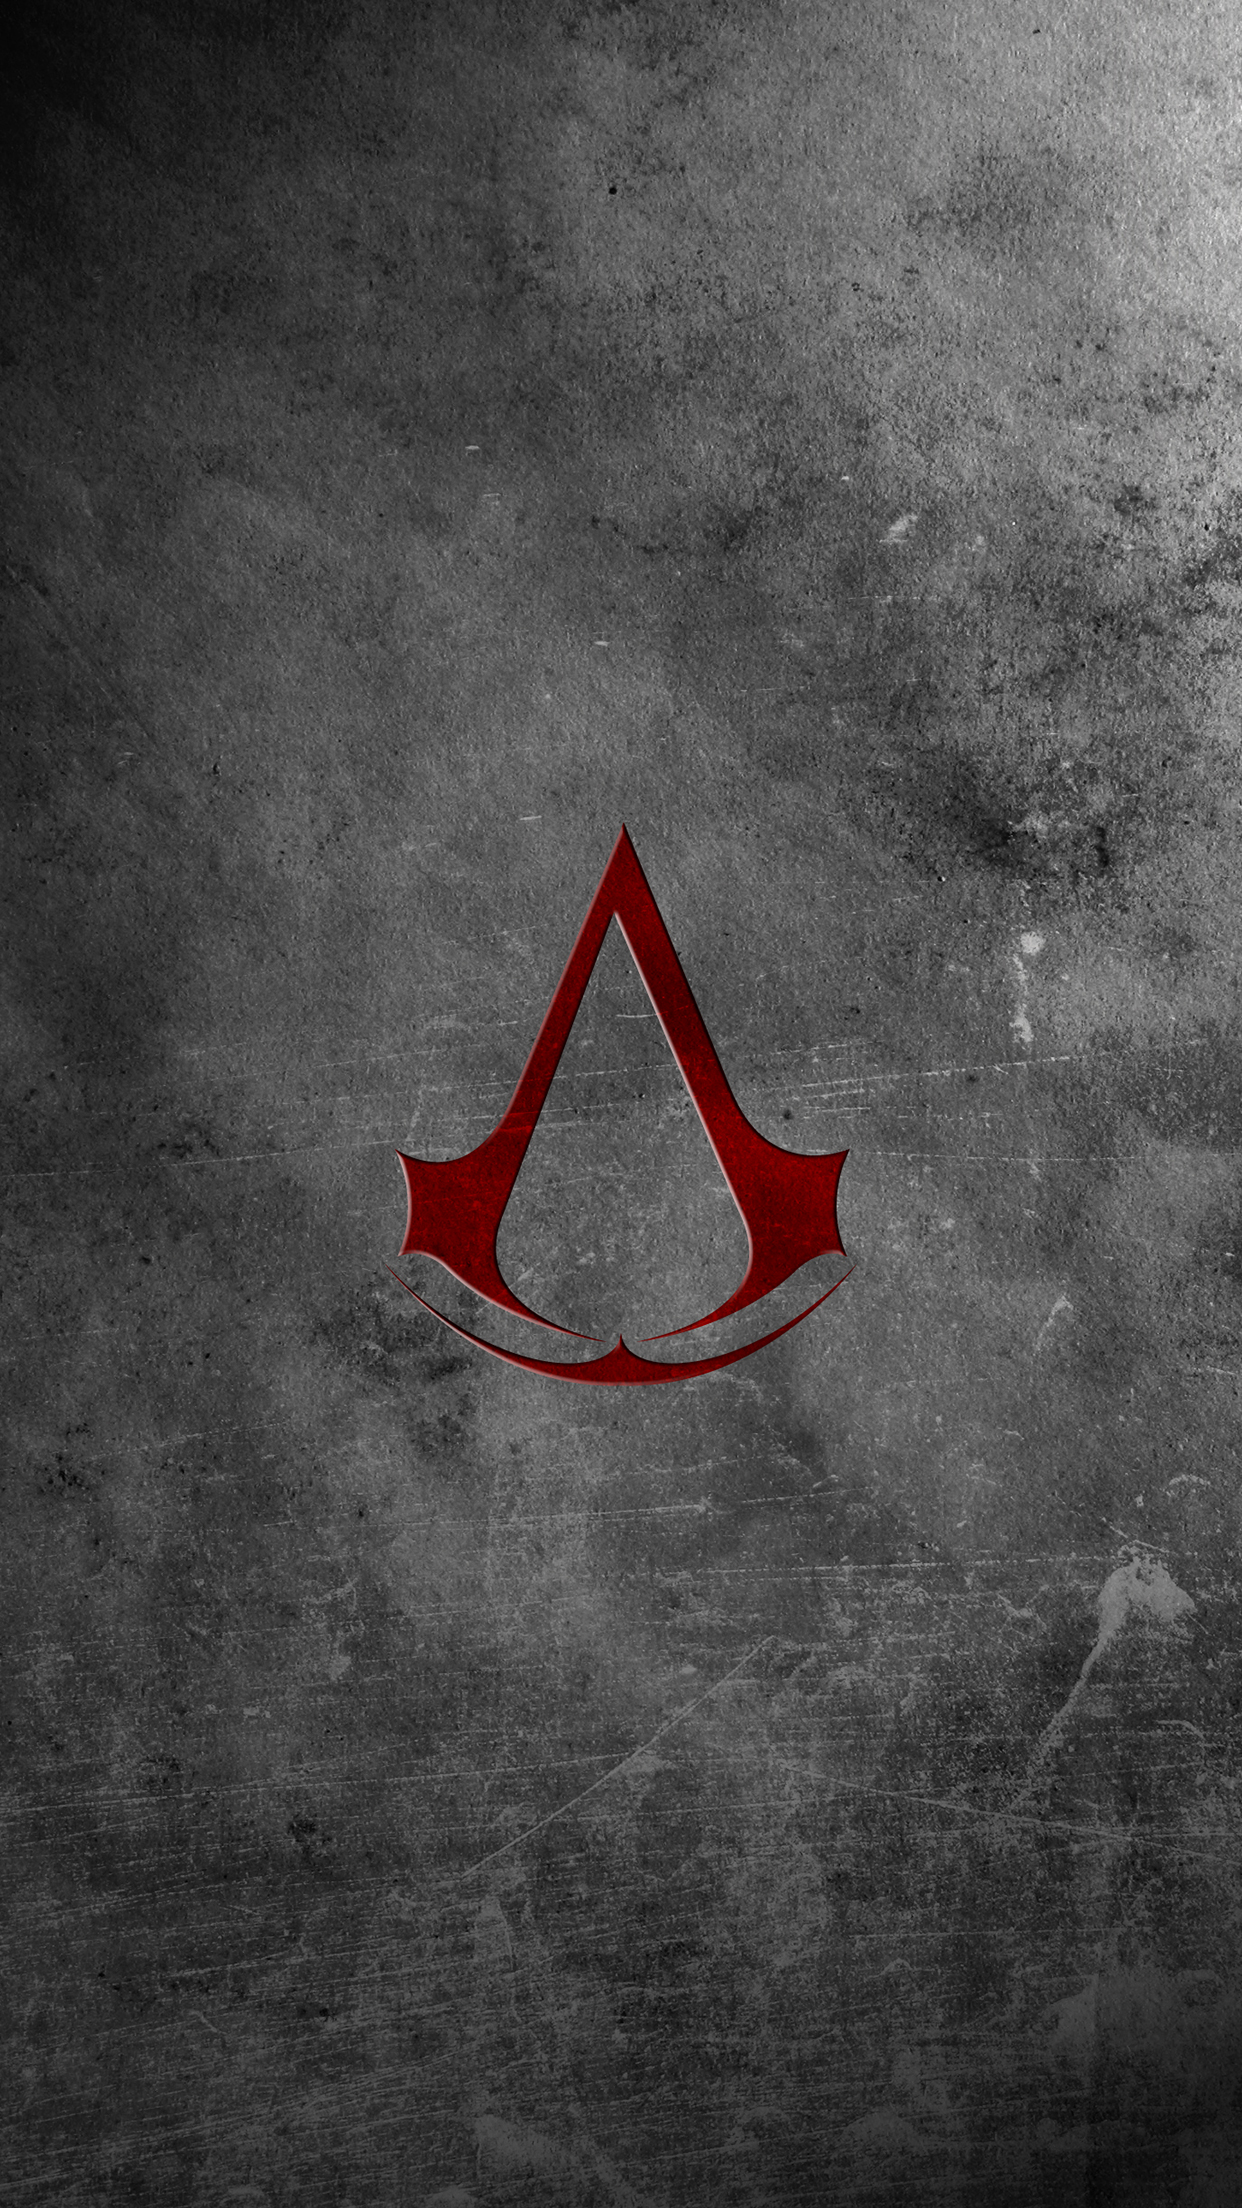 Assassins Creed logo 3Wallpapers iPhone Parallax Les 3 Wallpapers iPhone du jour (16/12/2014)